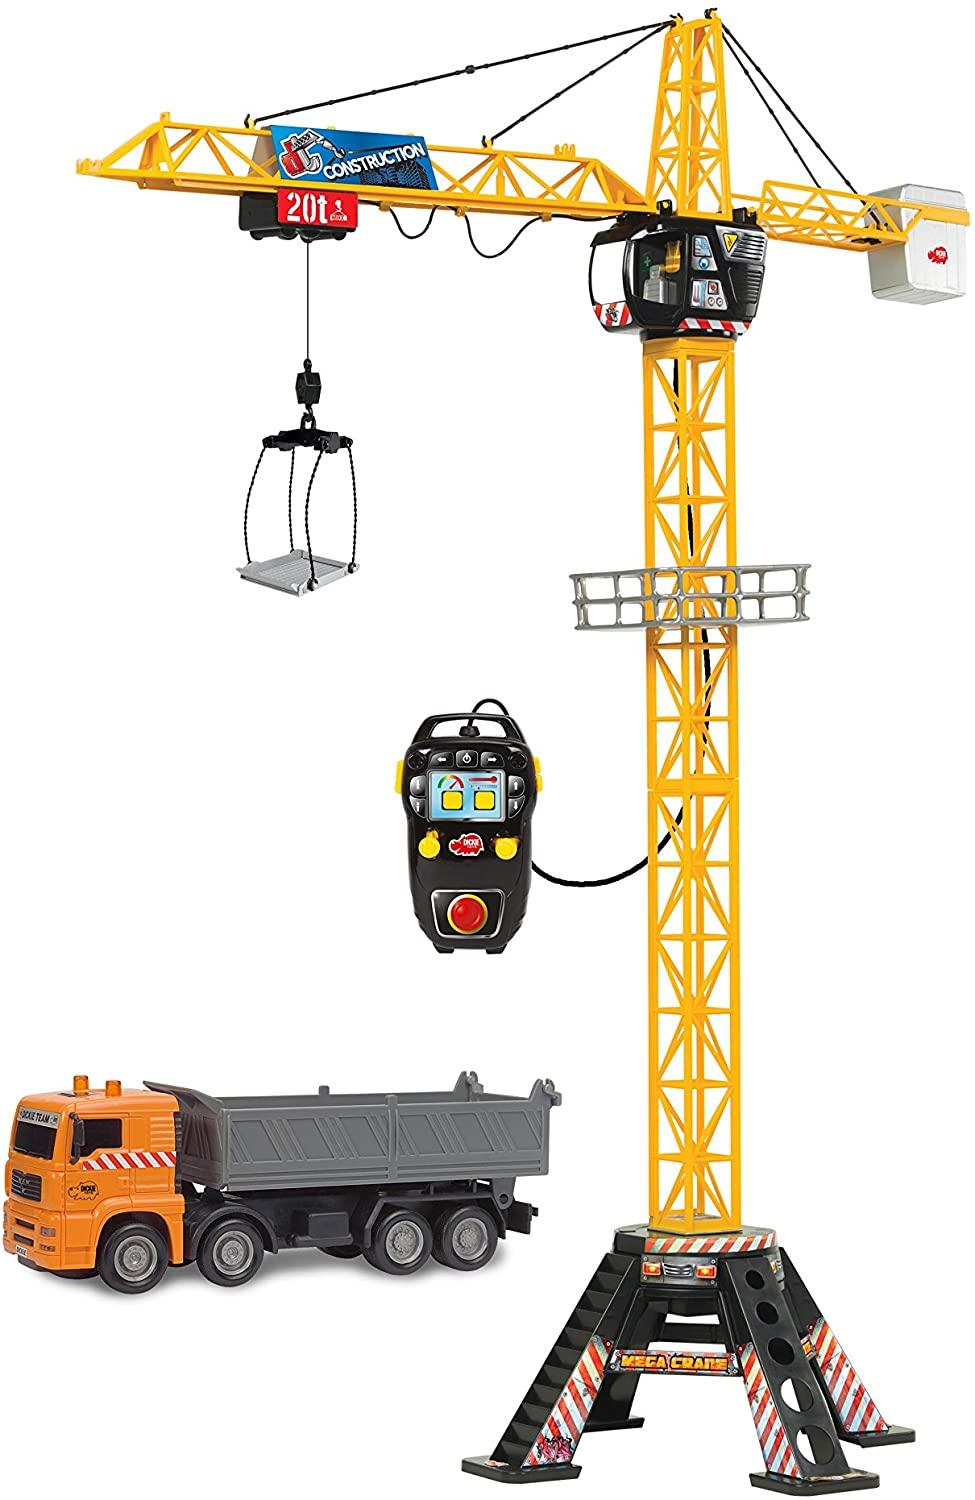 Top 9 Best Remote Control Cranes Toys (2020 Reviews & Buying Guide) 4